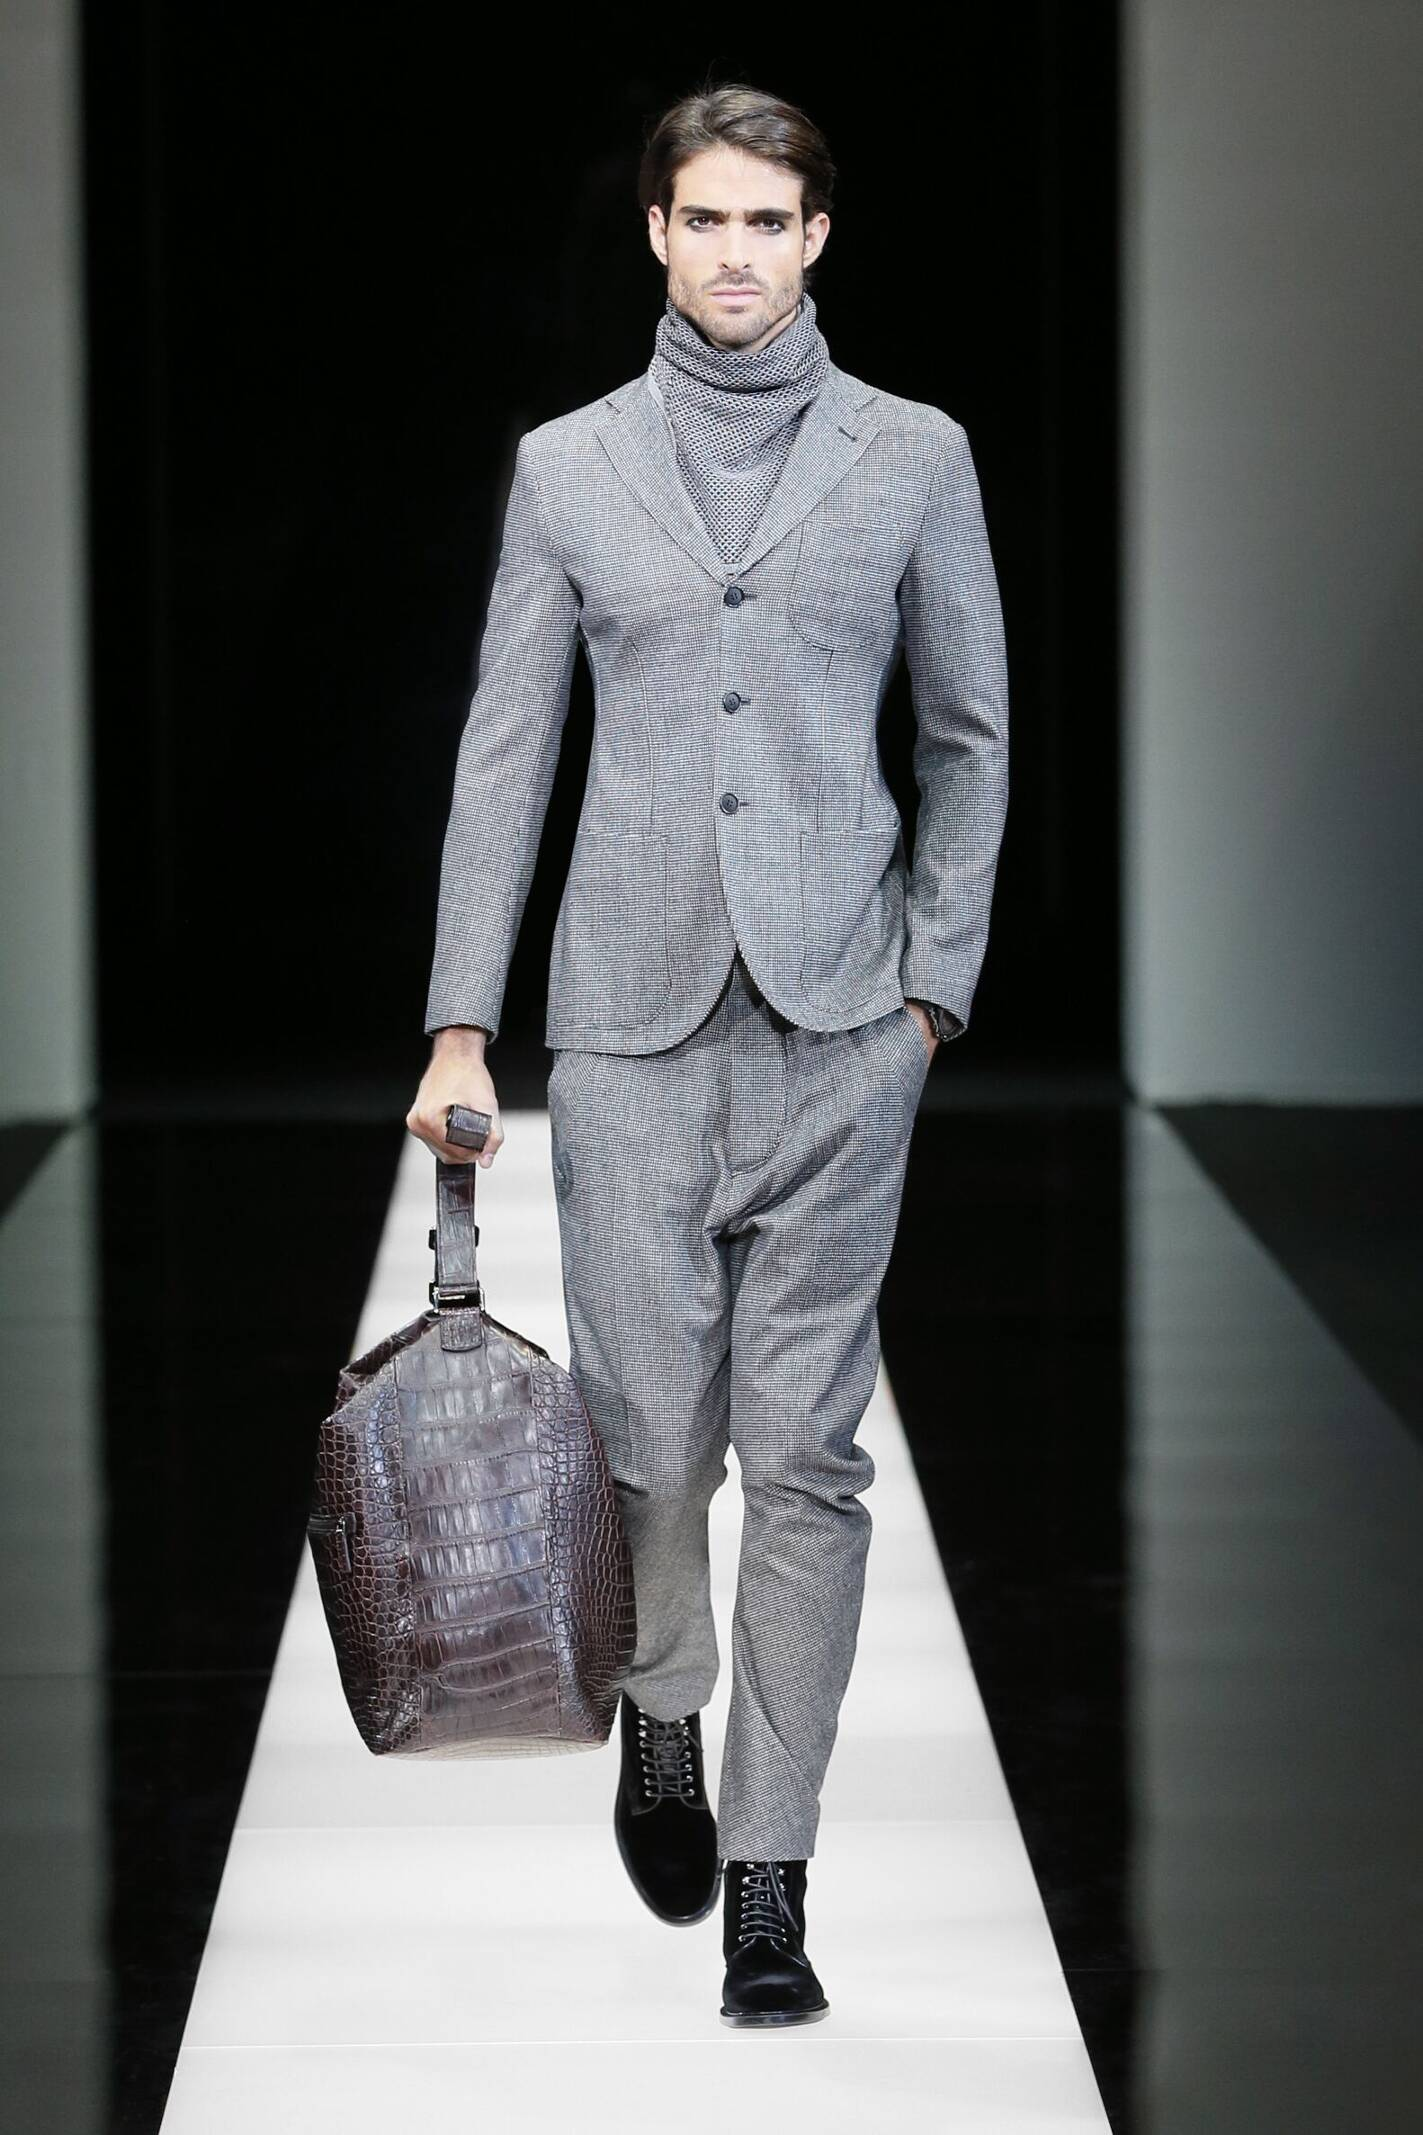 Fashion Model Giorgio Armani Collection Catwalk